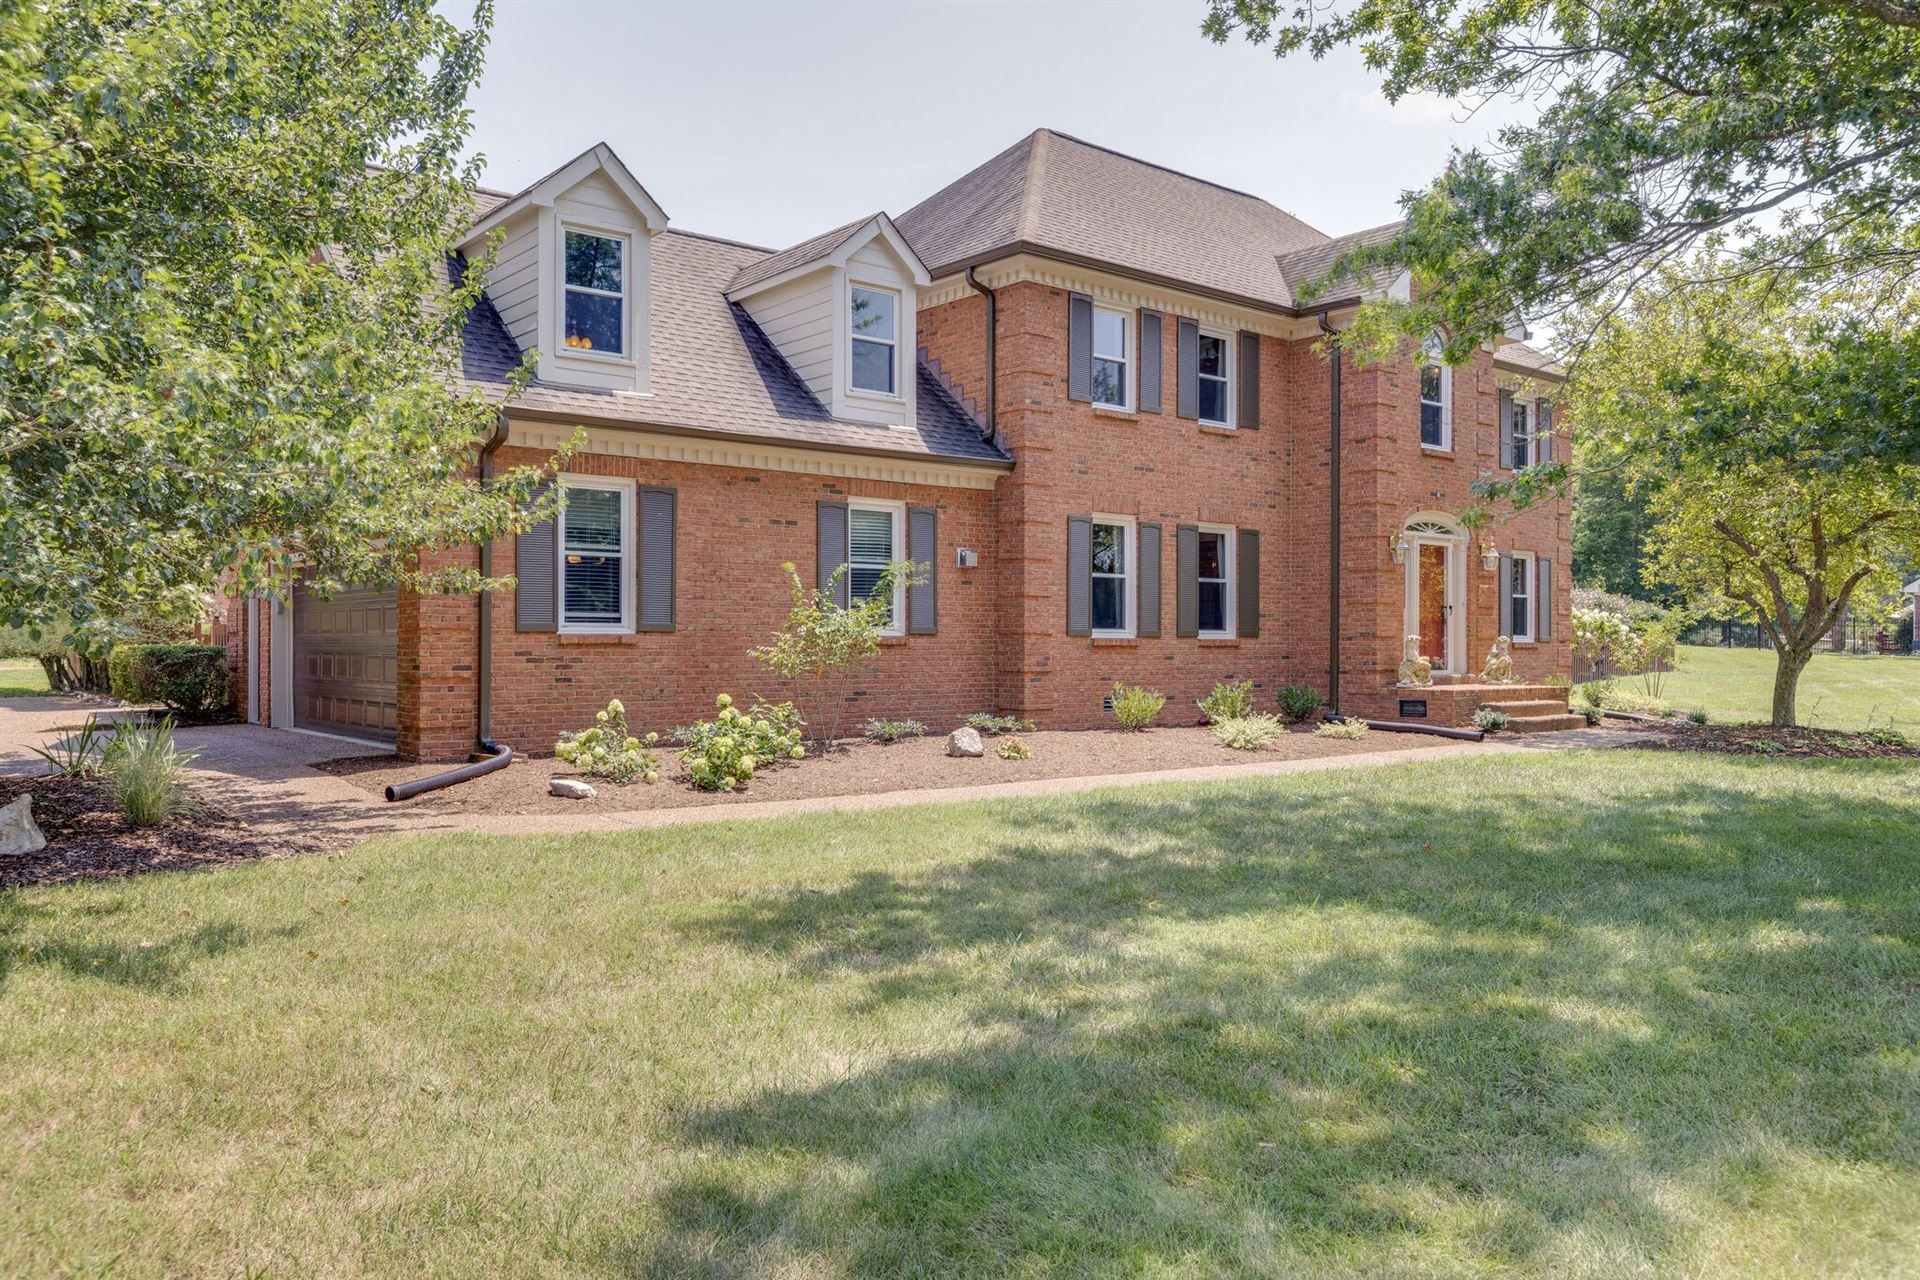 Photo of 9307 Navaho Dr, Brentwood, TN 37027 (MLS # 2276489)